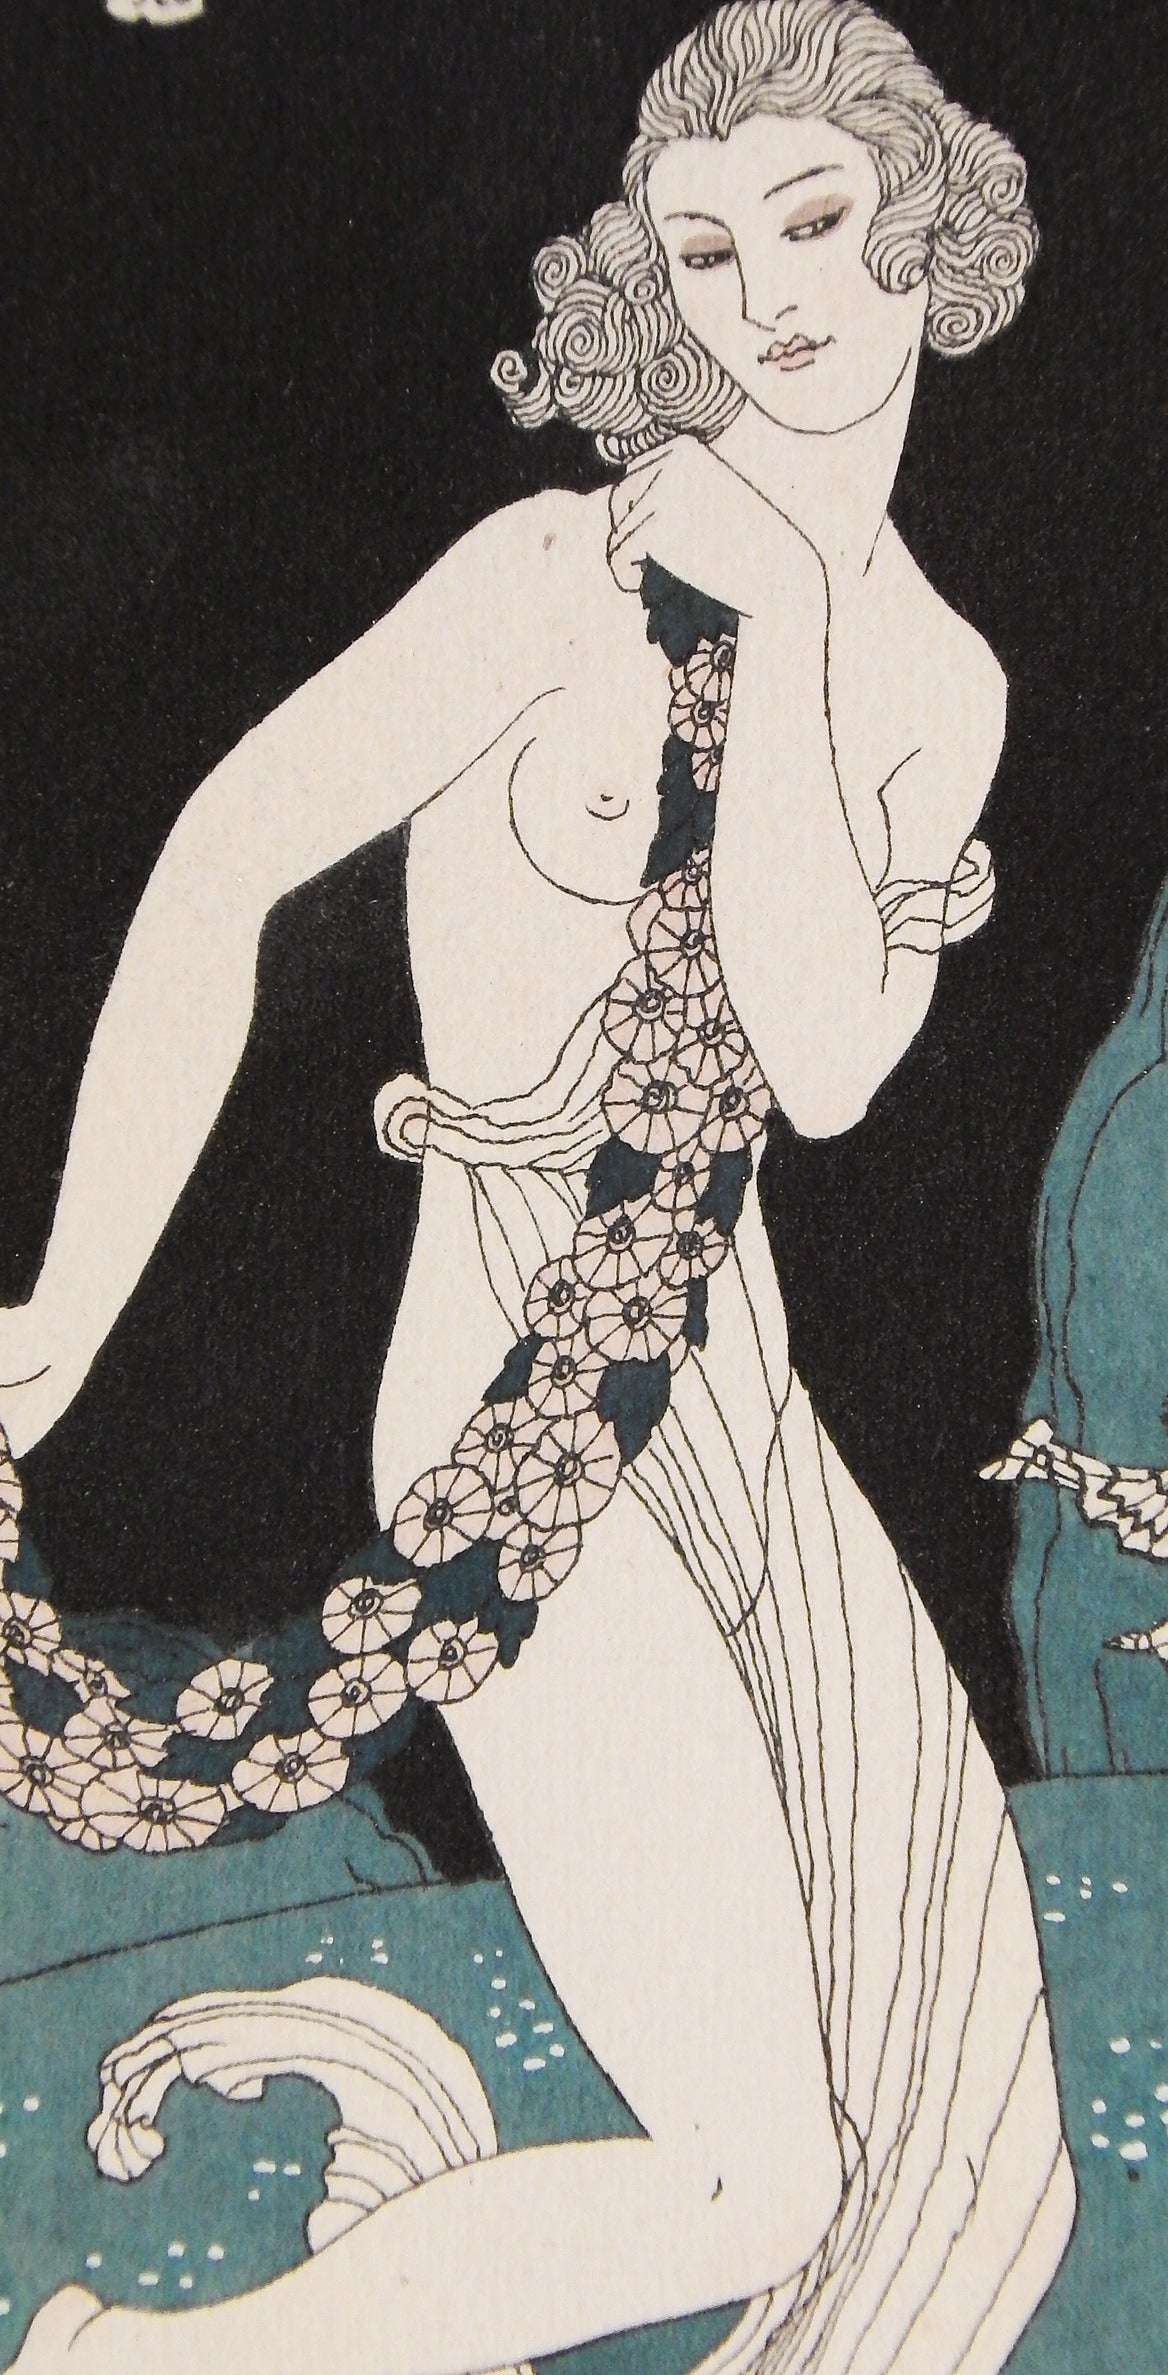 Considered one of the great masters and early progenitors of Art Deco, George Barbier produced a number of exquisite illustrations, costume designs, set designs and other artworks that were highly regarded in the 1910s and 1920s. Dubbed the